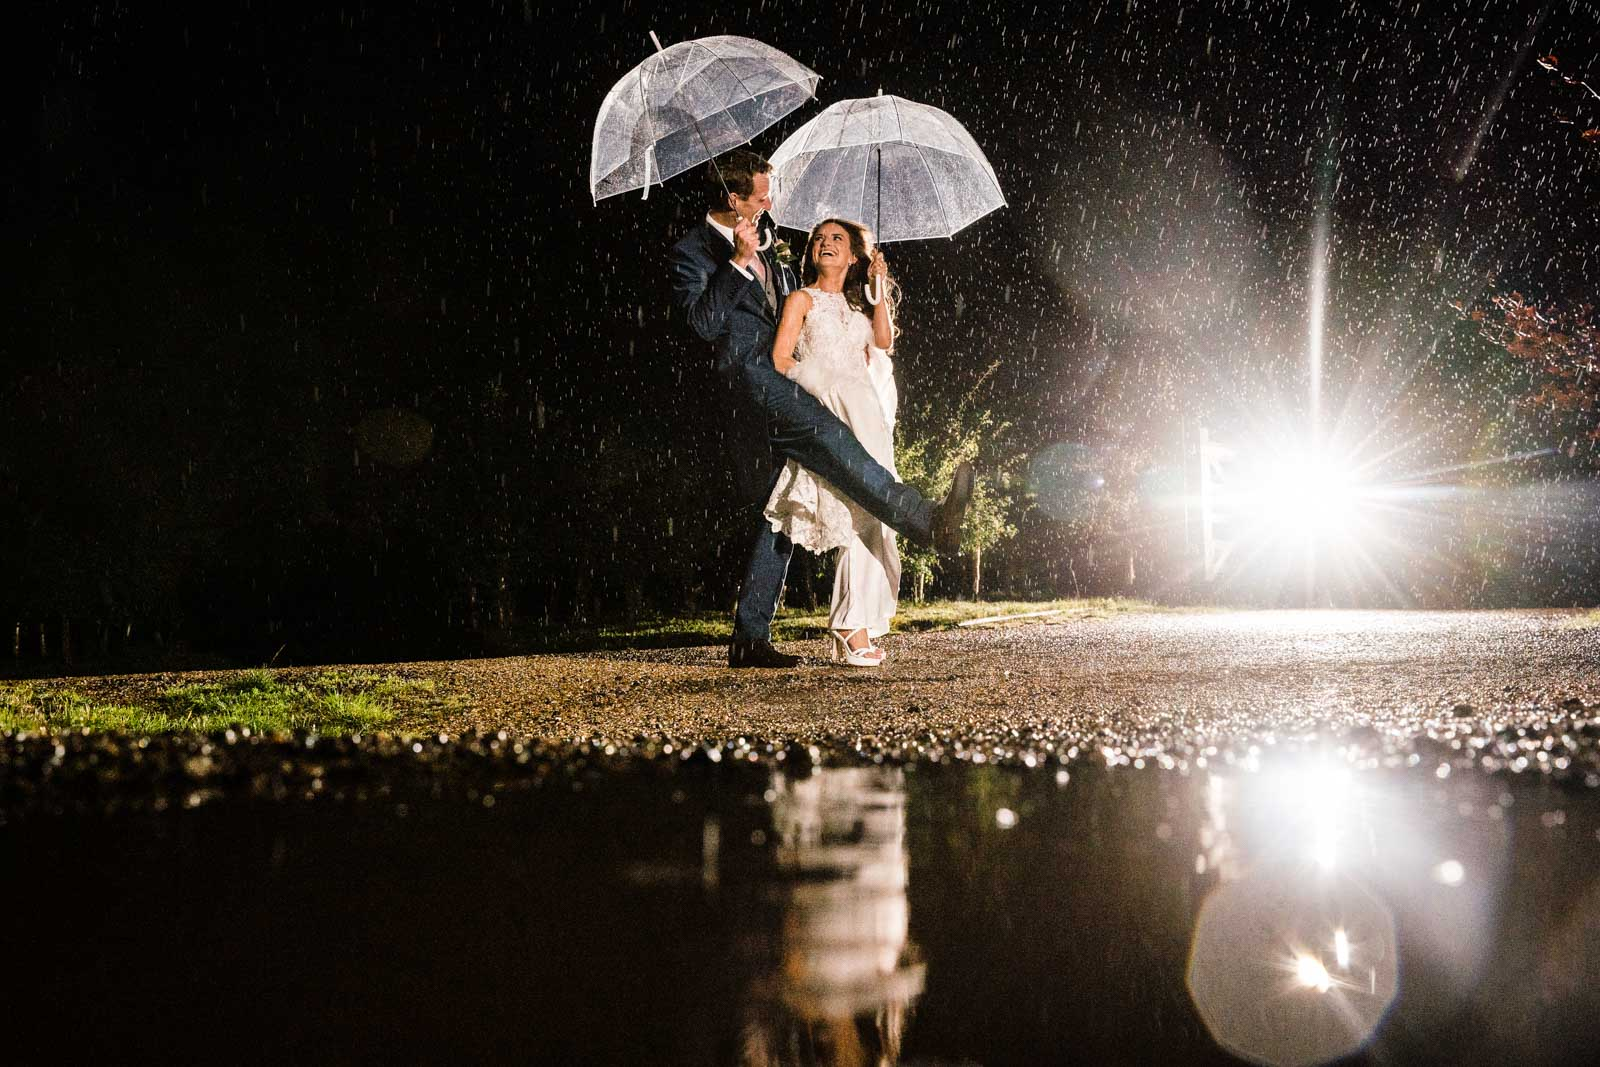 Dancing in the train photo of the wedding couple standing next to a puddle and dancing at night